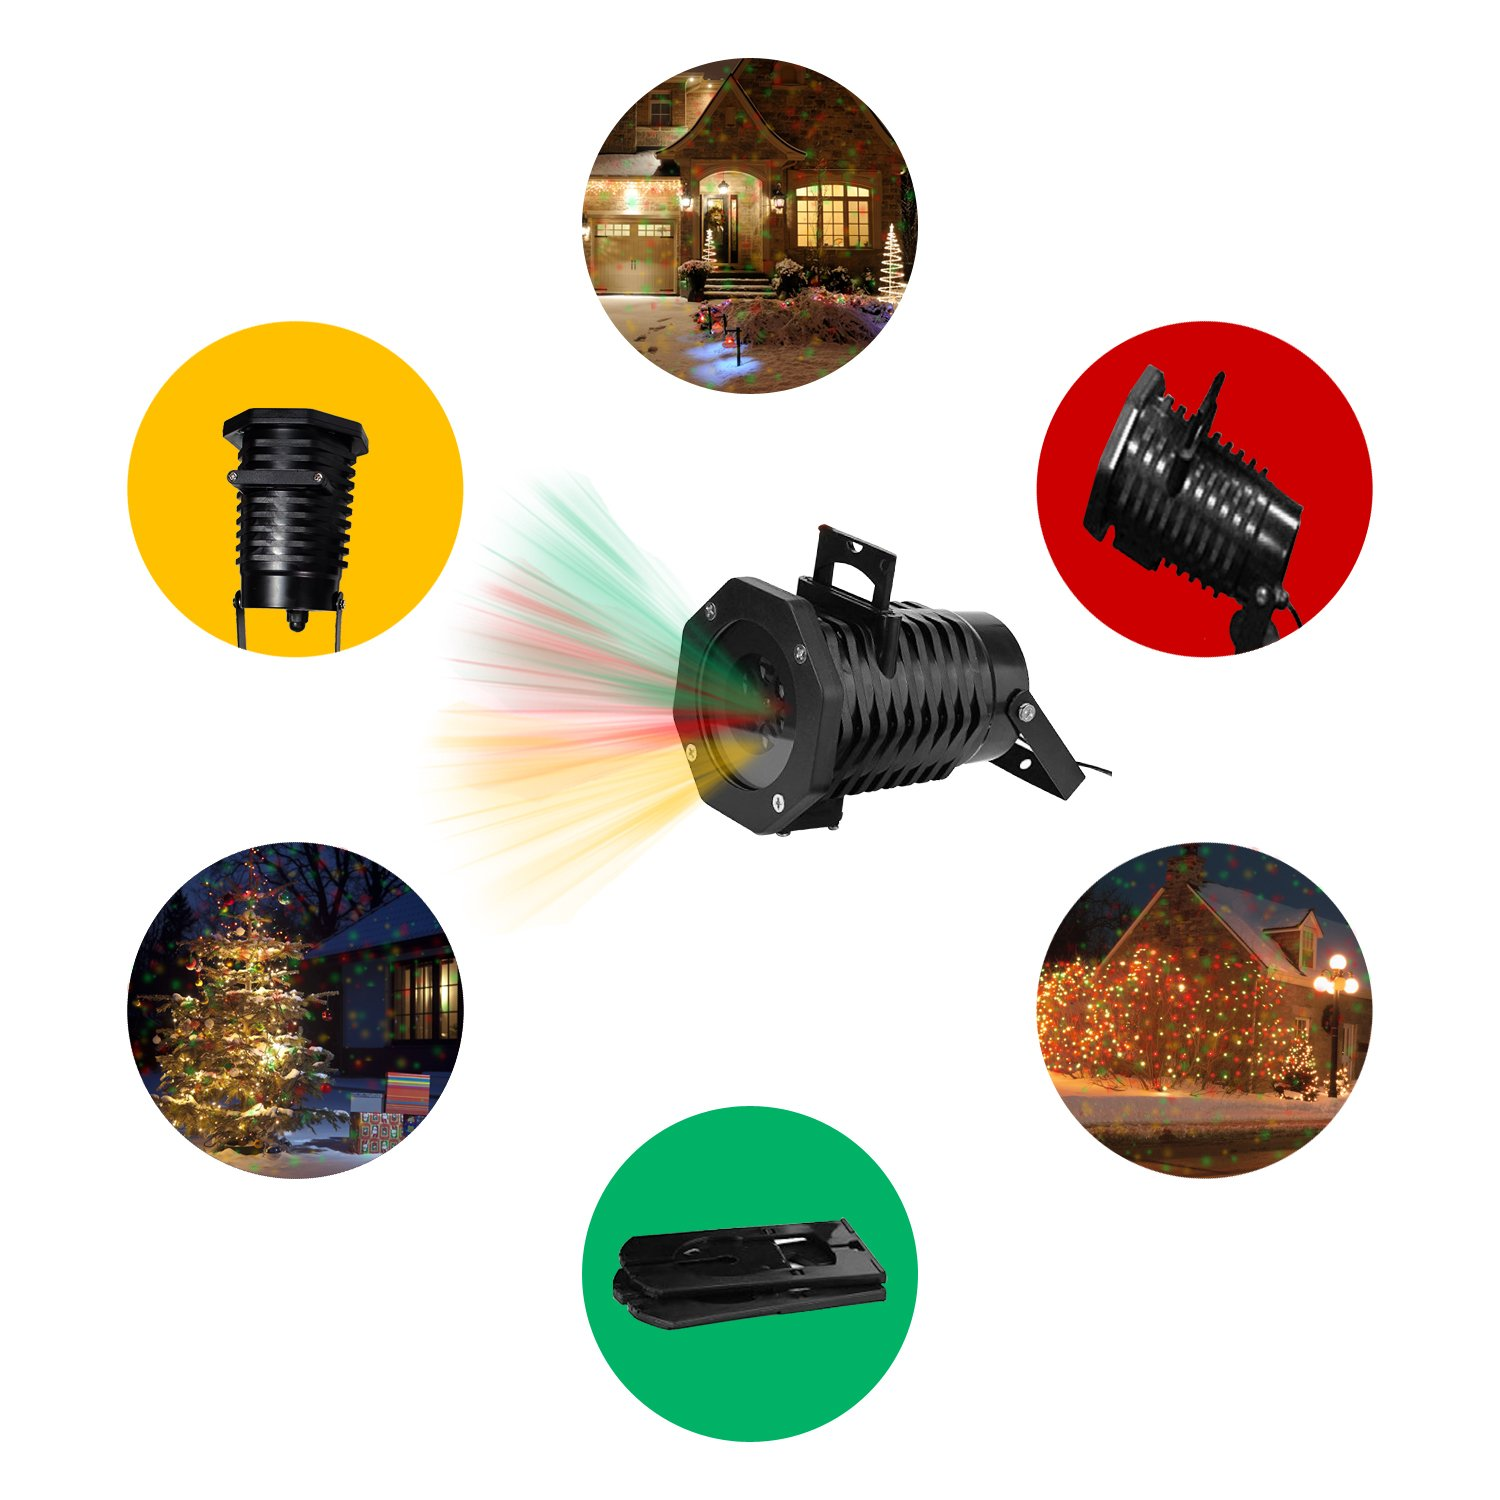 Christmas Lights Projector – Multicolor Rotating Led Christmas Shower lights, 10PCS Pattern Waterproof Lens Christmas Projector Lights Outdoor / Indoor for Celebration, Garden Decorations and more by Novapolt (Image #4)